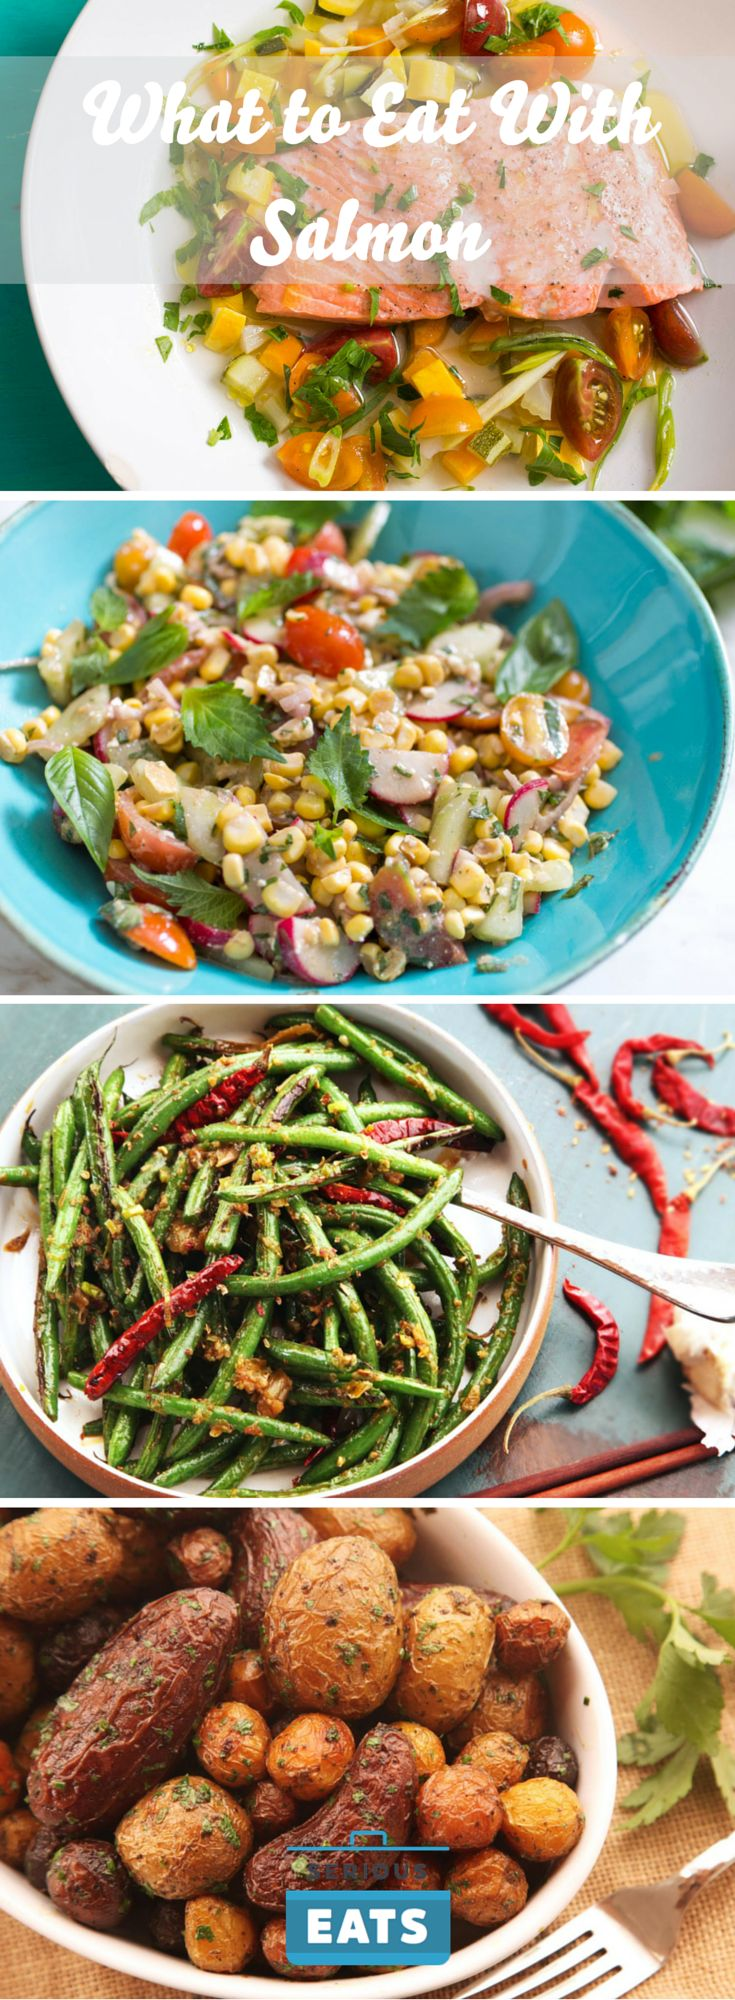 best 25 side dishes with salmon ideas on pinterest side dishes for salmon salmon side dishes. Black Bedroom Furniture Sets. Home Design Ideas